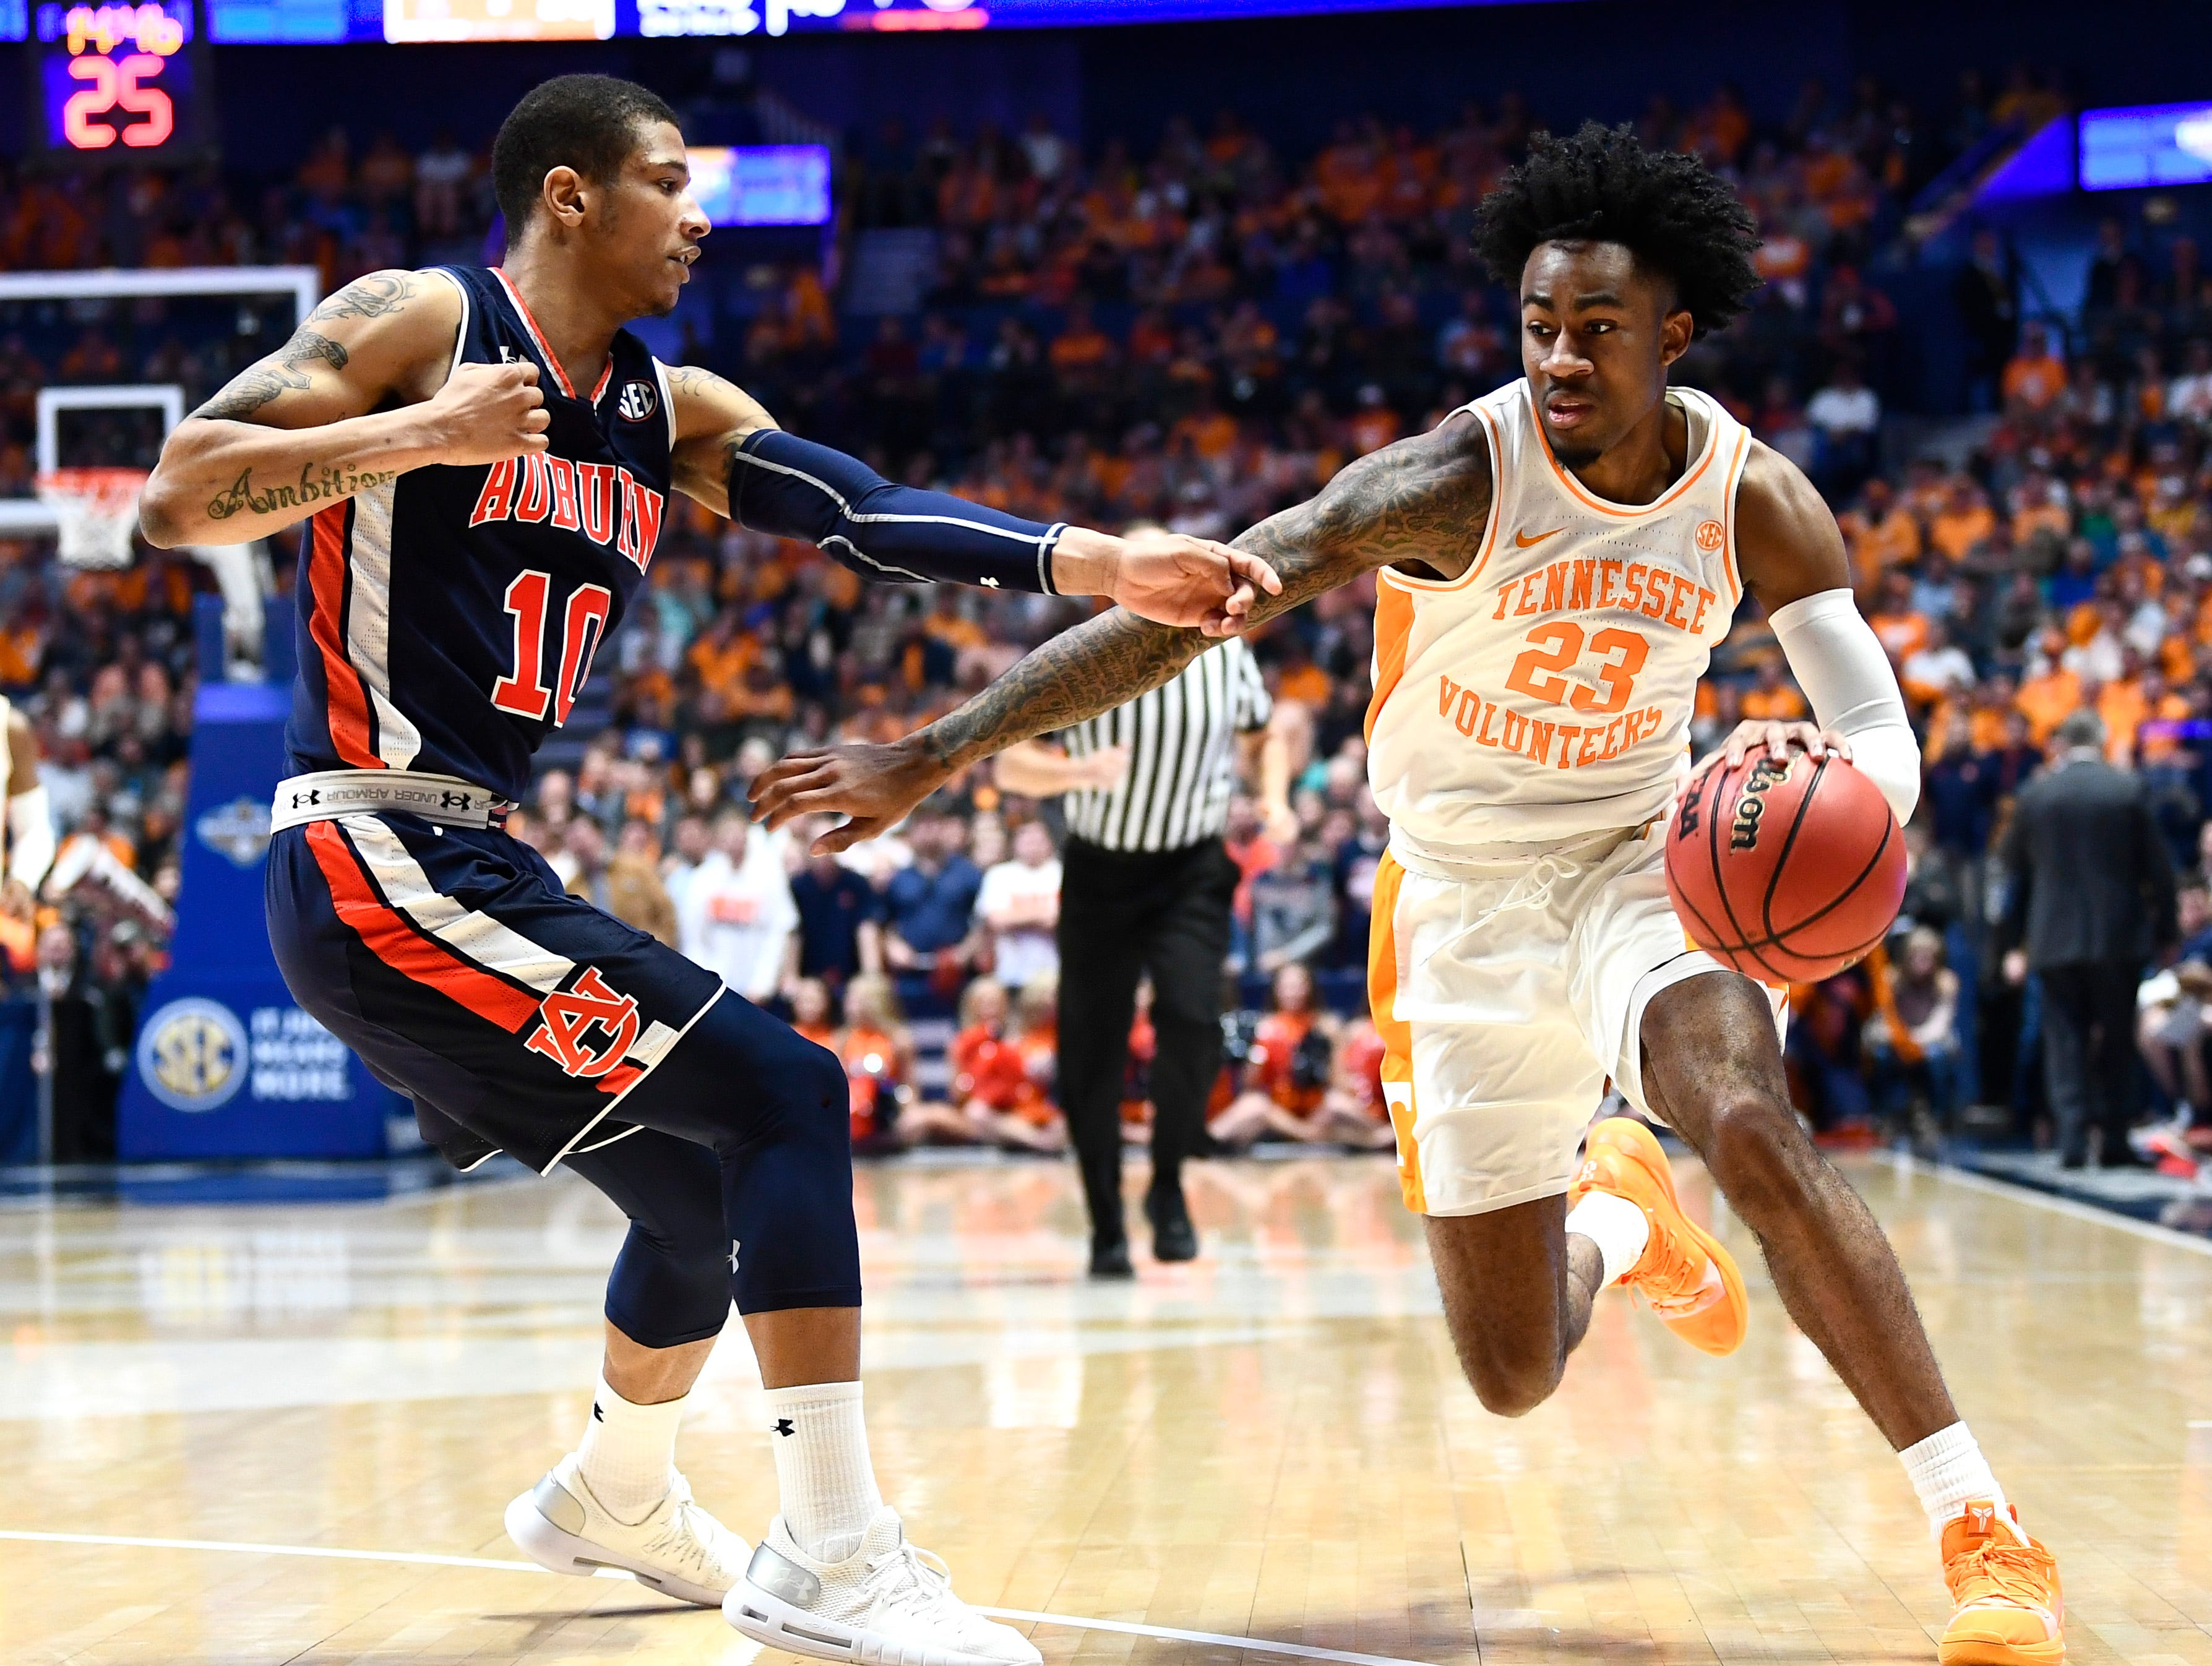 Tennessee guard Jordan Bowden (23) moves the ball defended by Auburn guard Samir Doughty (10)during the second half of the SEC Men's Basketball Tournament championship game at Bridgestone Arena in Nashville, Tenn., Sunday, March 17, 2019.